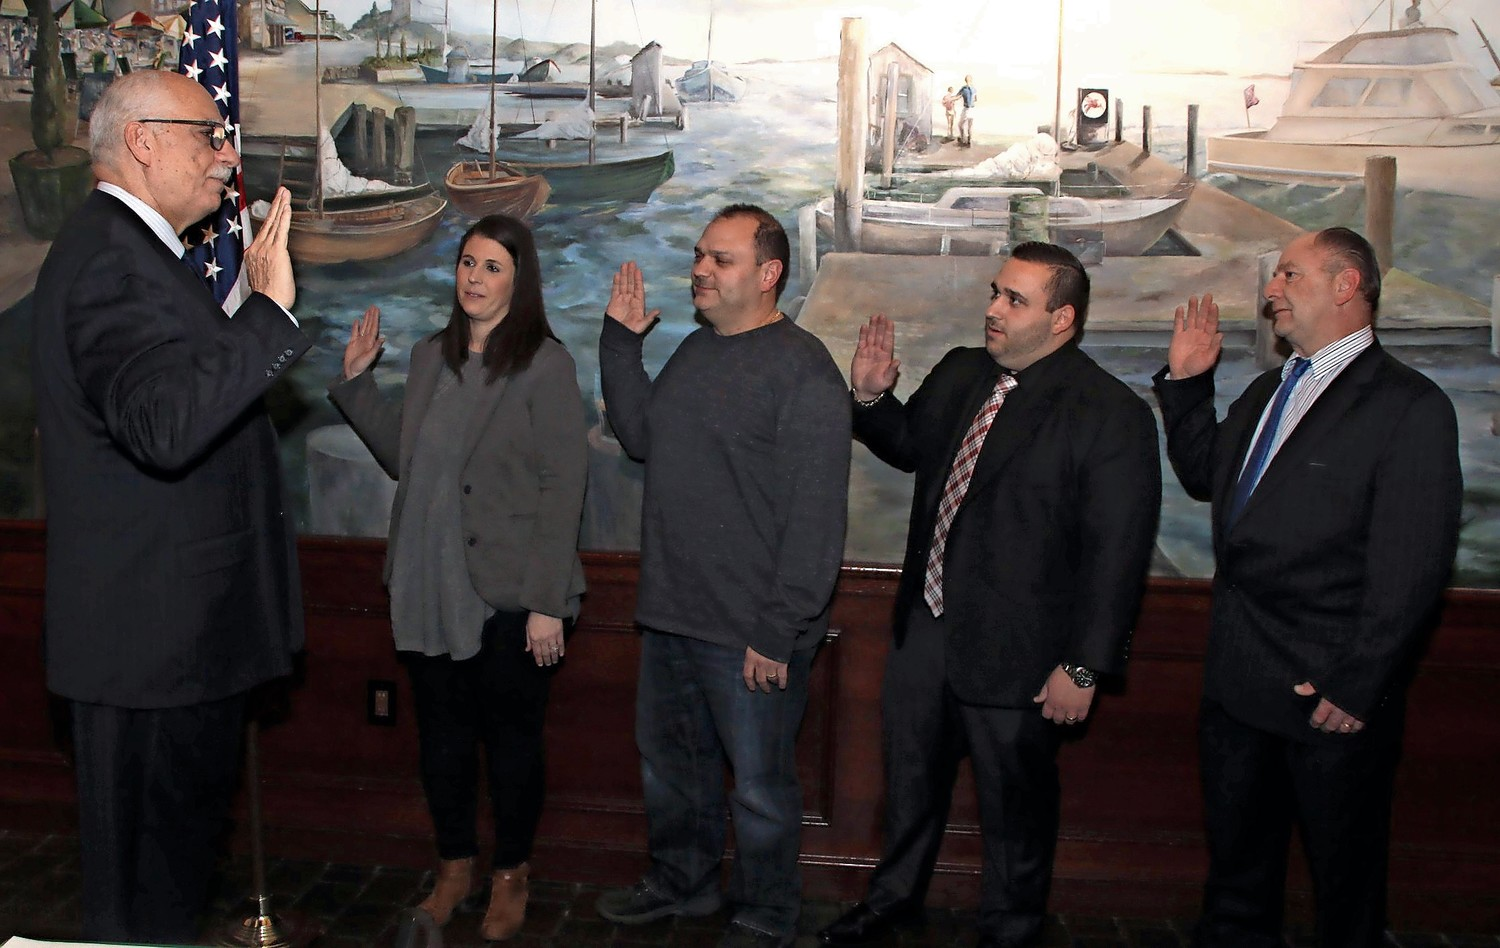 Hempstead Town Councilman Dennis Dunne Sr. swore in the new officers at the Seaford Chamber of Commerce installation ceremony. From left, Brigette DaSilva, secretary, Nick Bilotta, second vice president, Joe Calise, treasurer and Kenneth Jacobsen, first vice president.